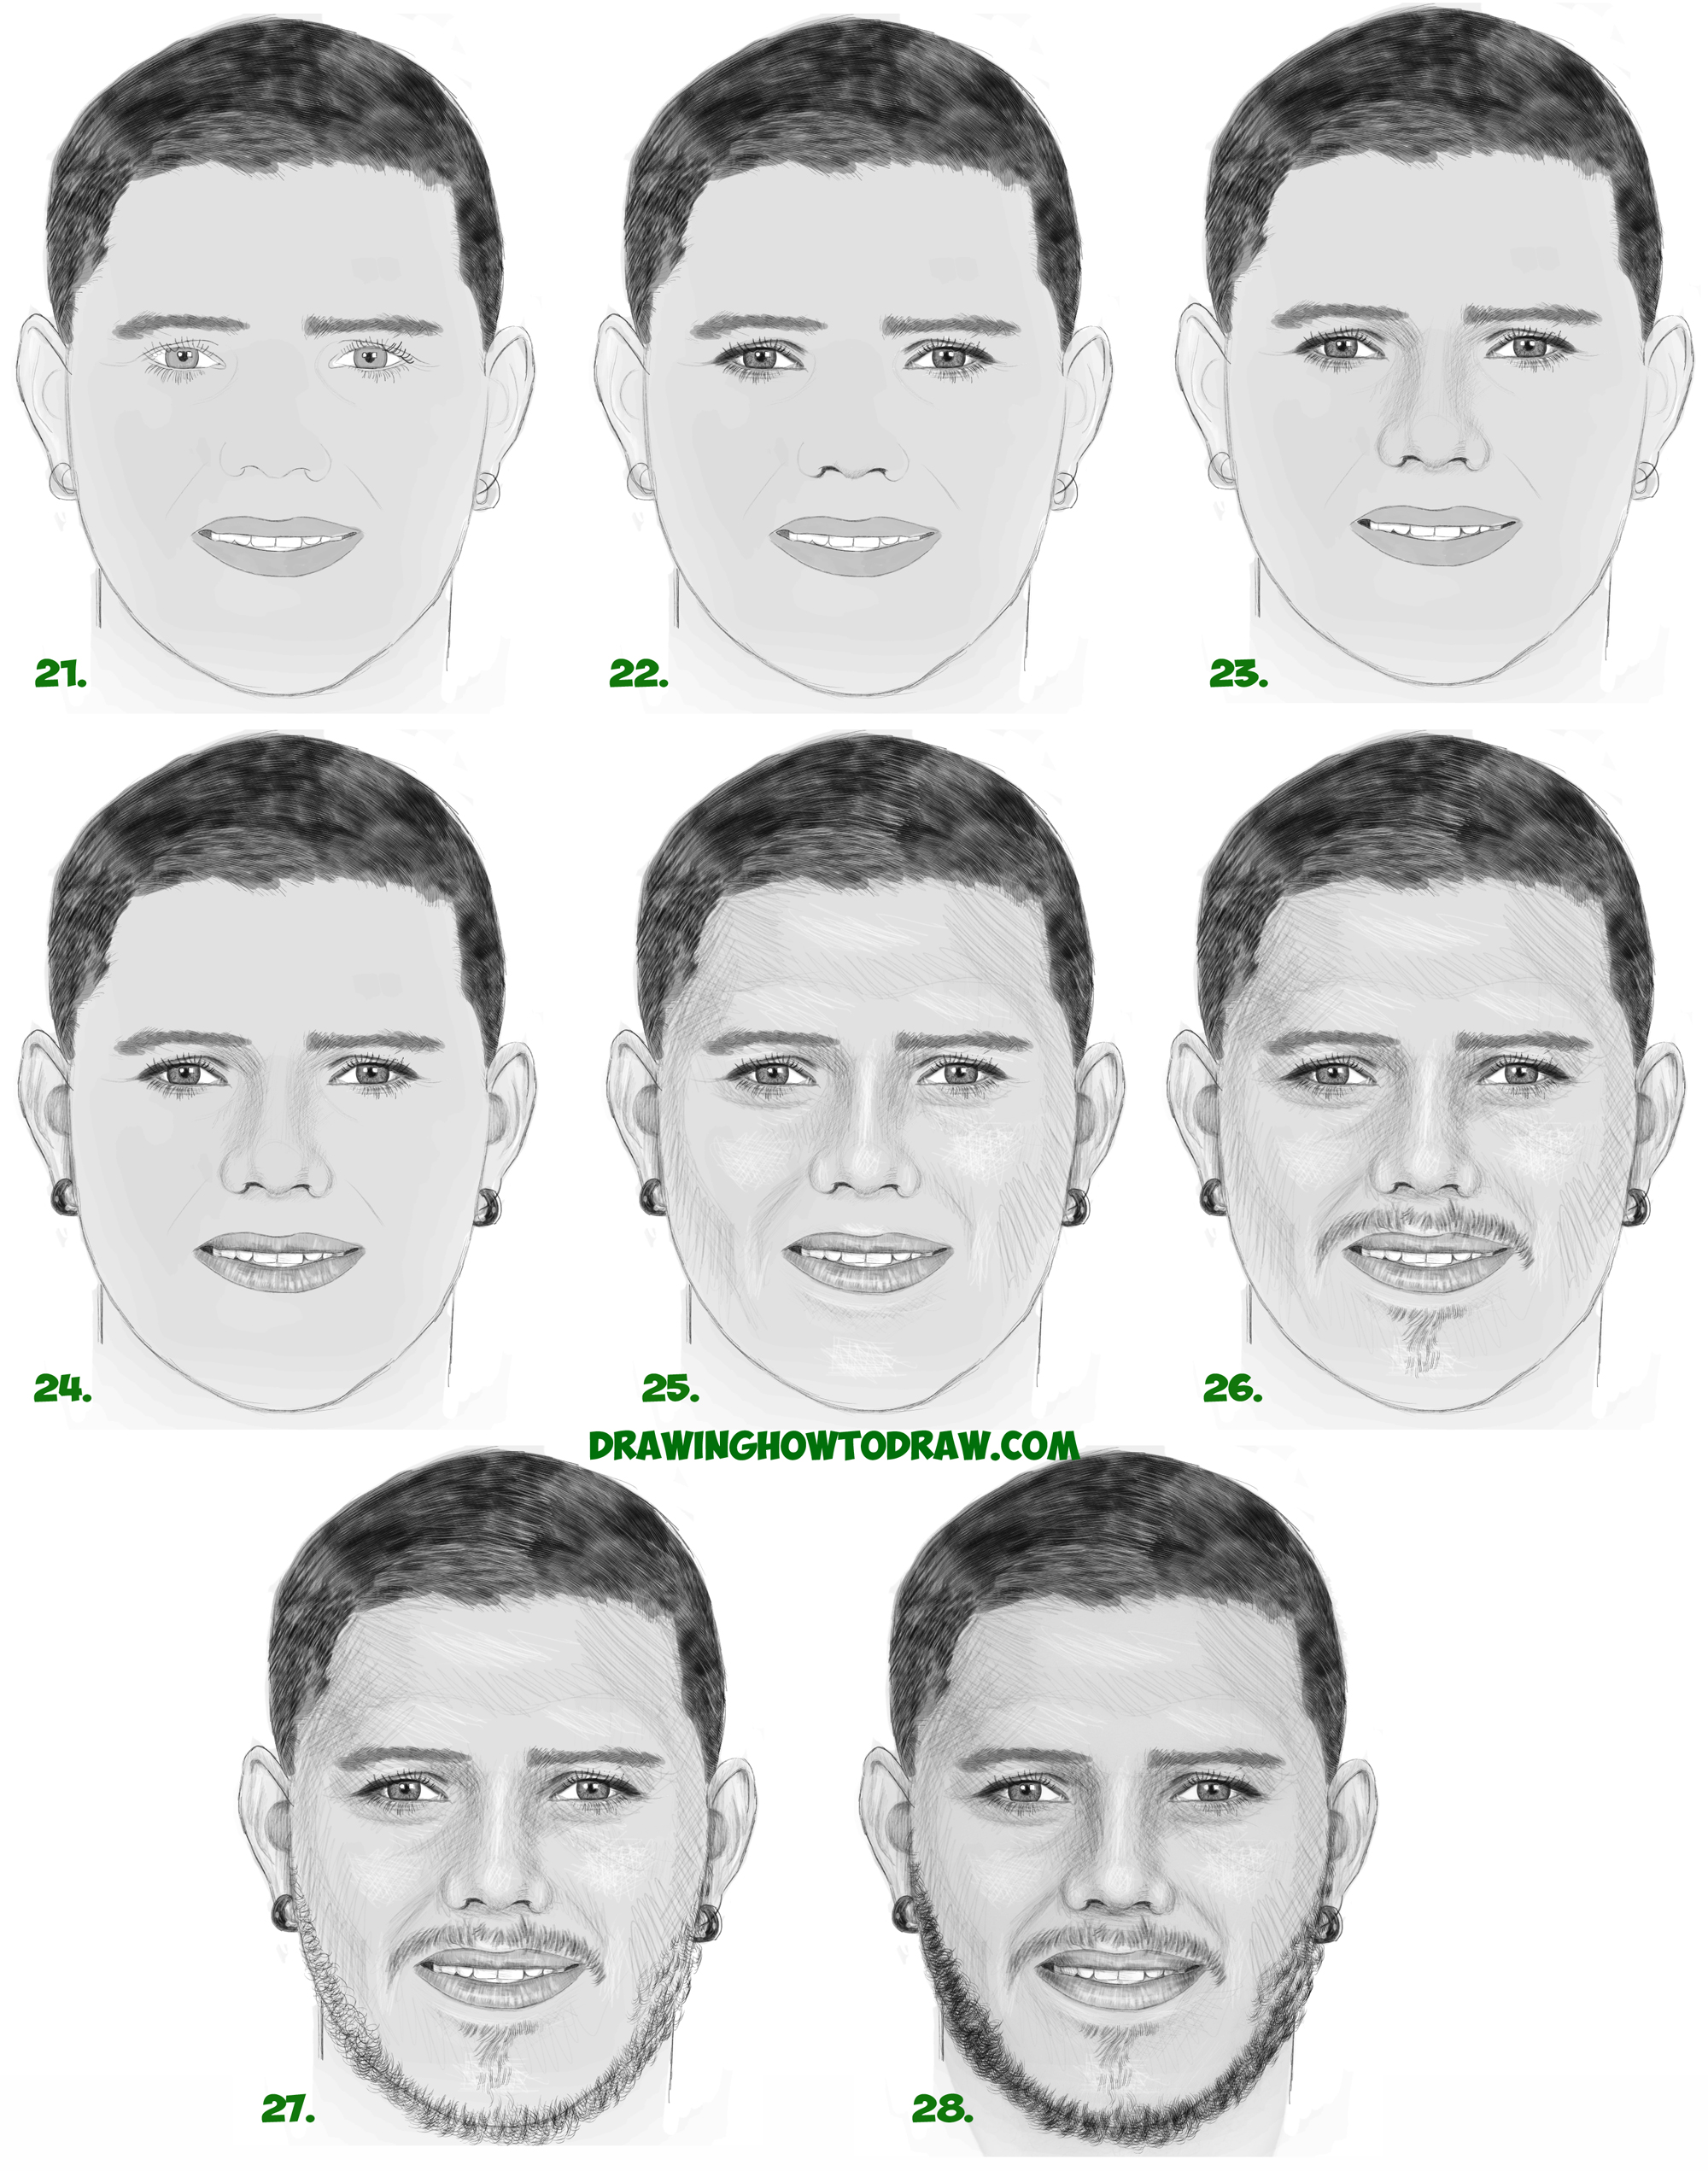 Learn How to Draw Mauro Icardi - Drawing a Realistic Man's Face with Beard from Front View Simple Steps Drawing for Beginners